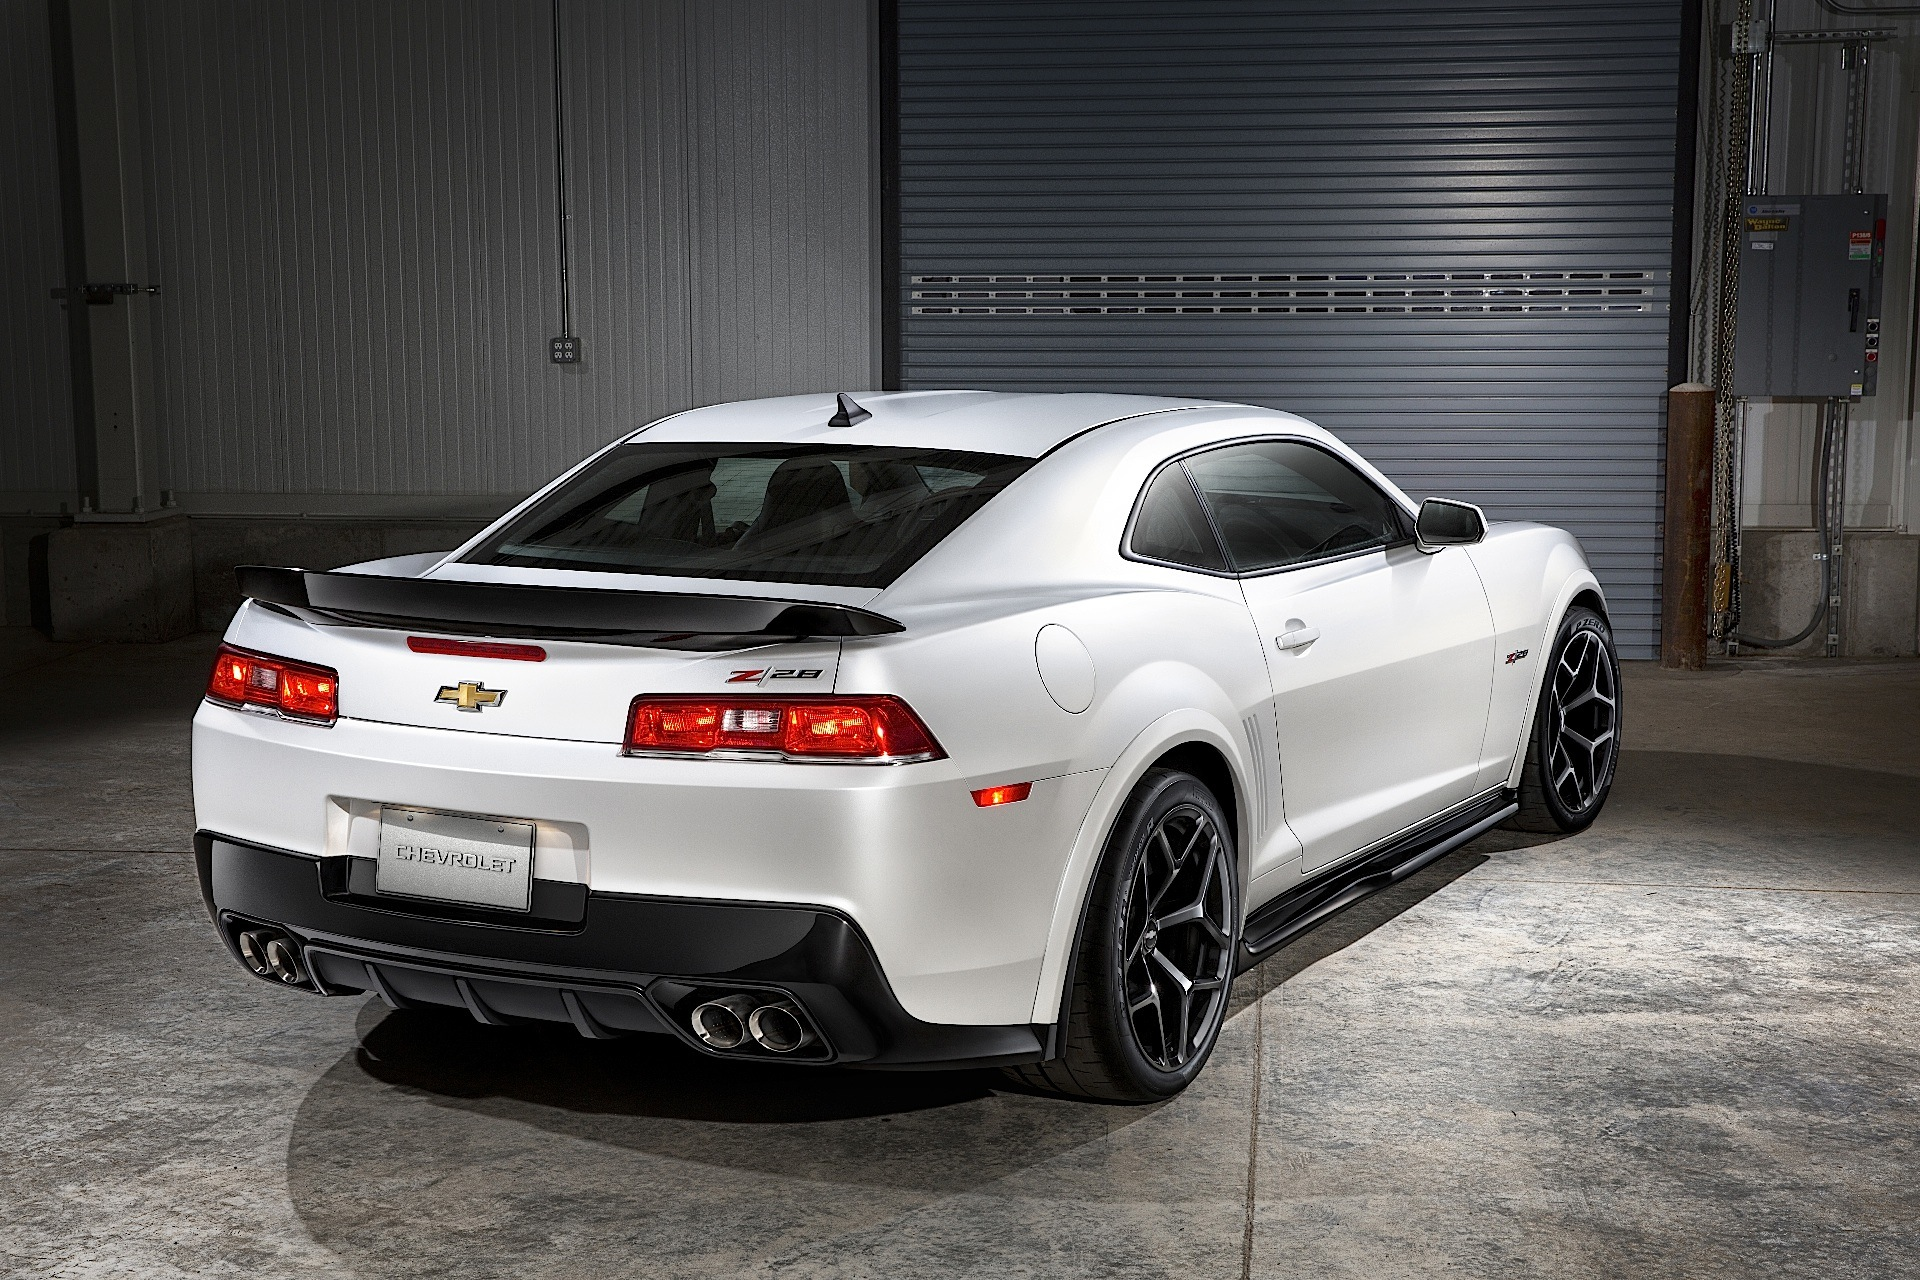 Chevrolet Camaro Z28 Specs Photos 2013 2014 2015 2016 2017